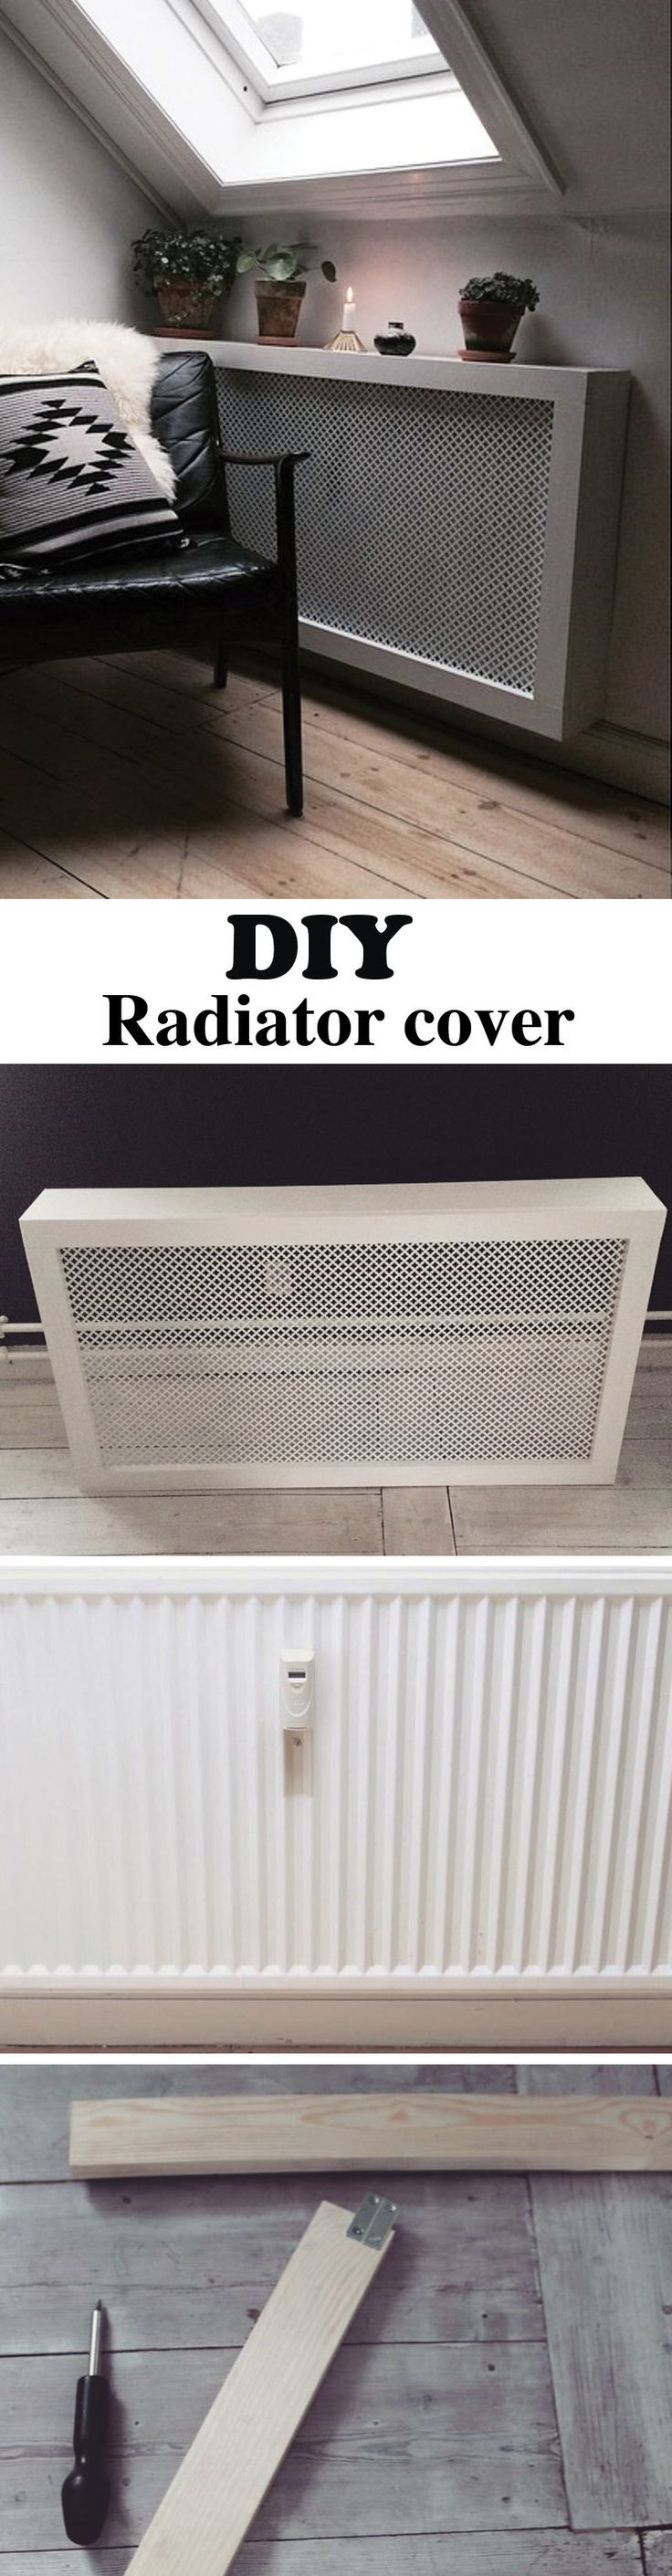 Best 20 Radiator cover ideas on Pinterest